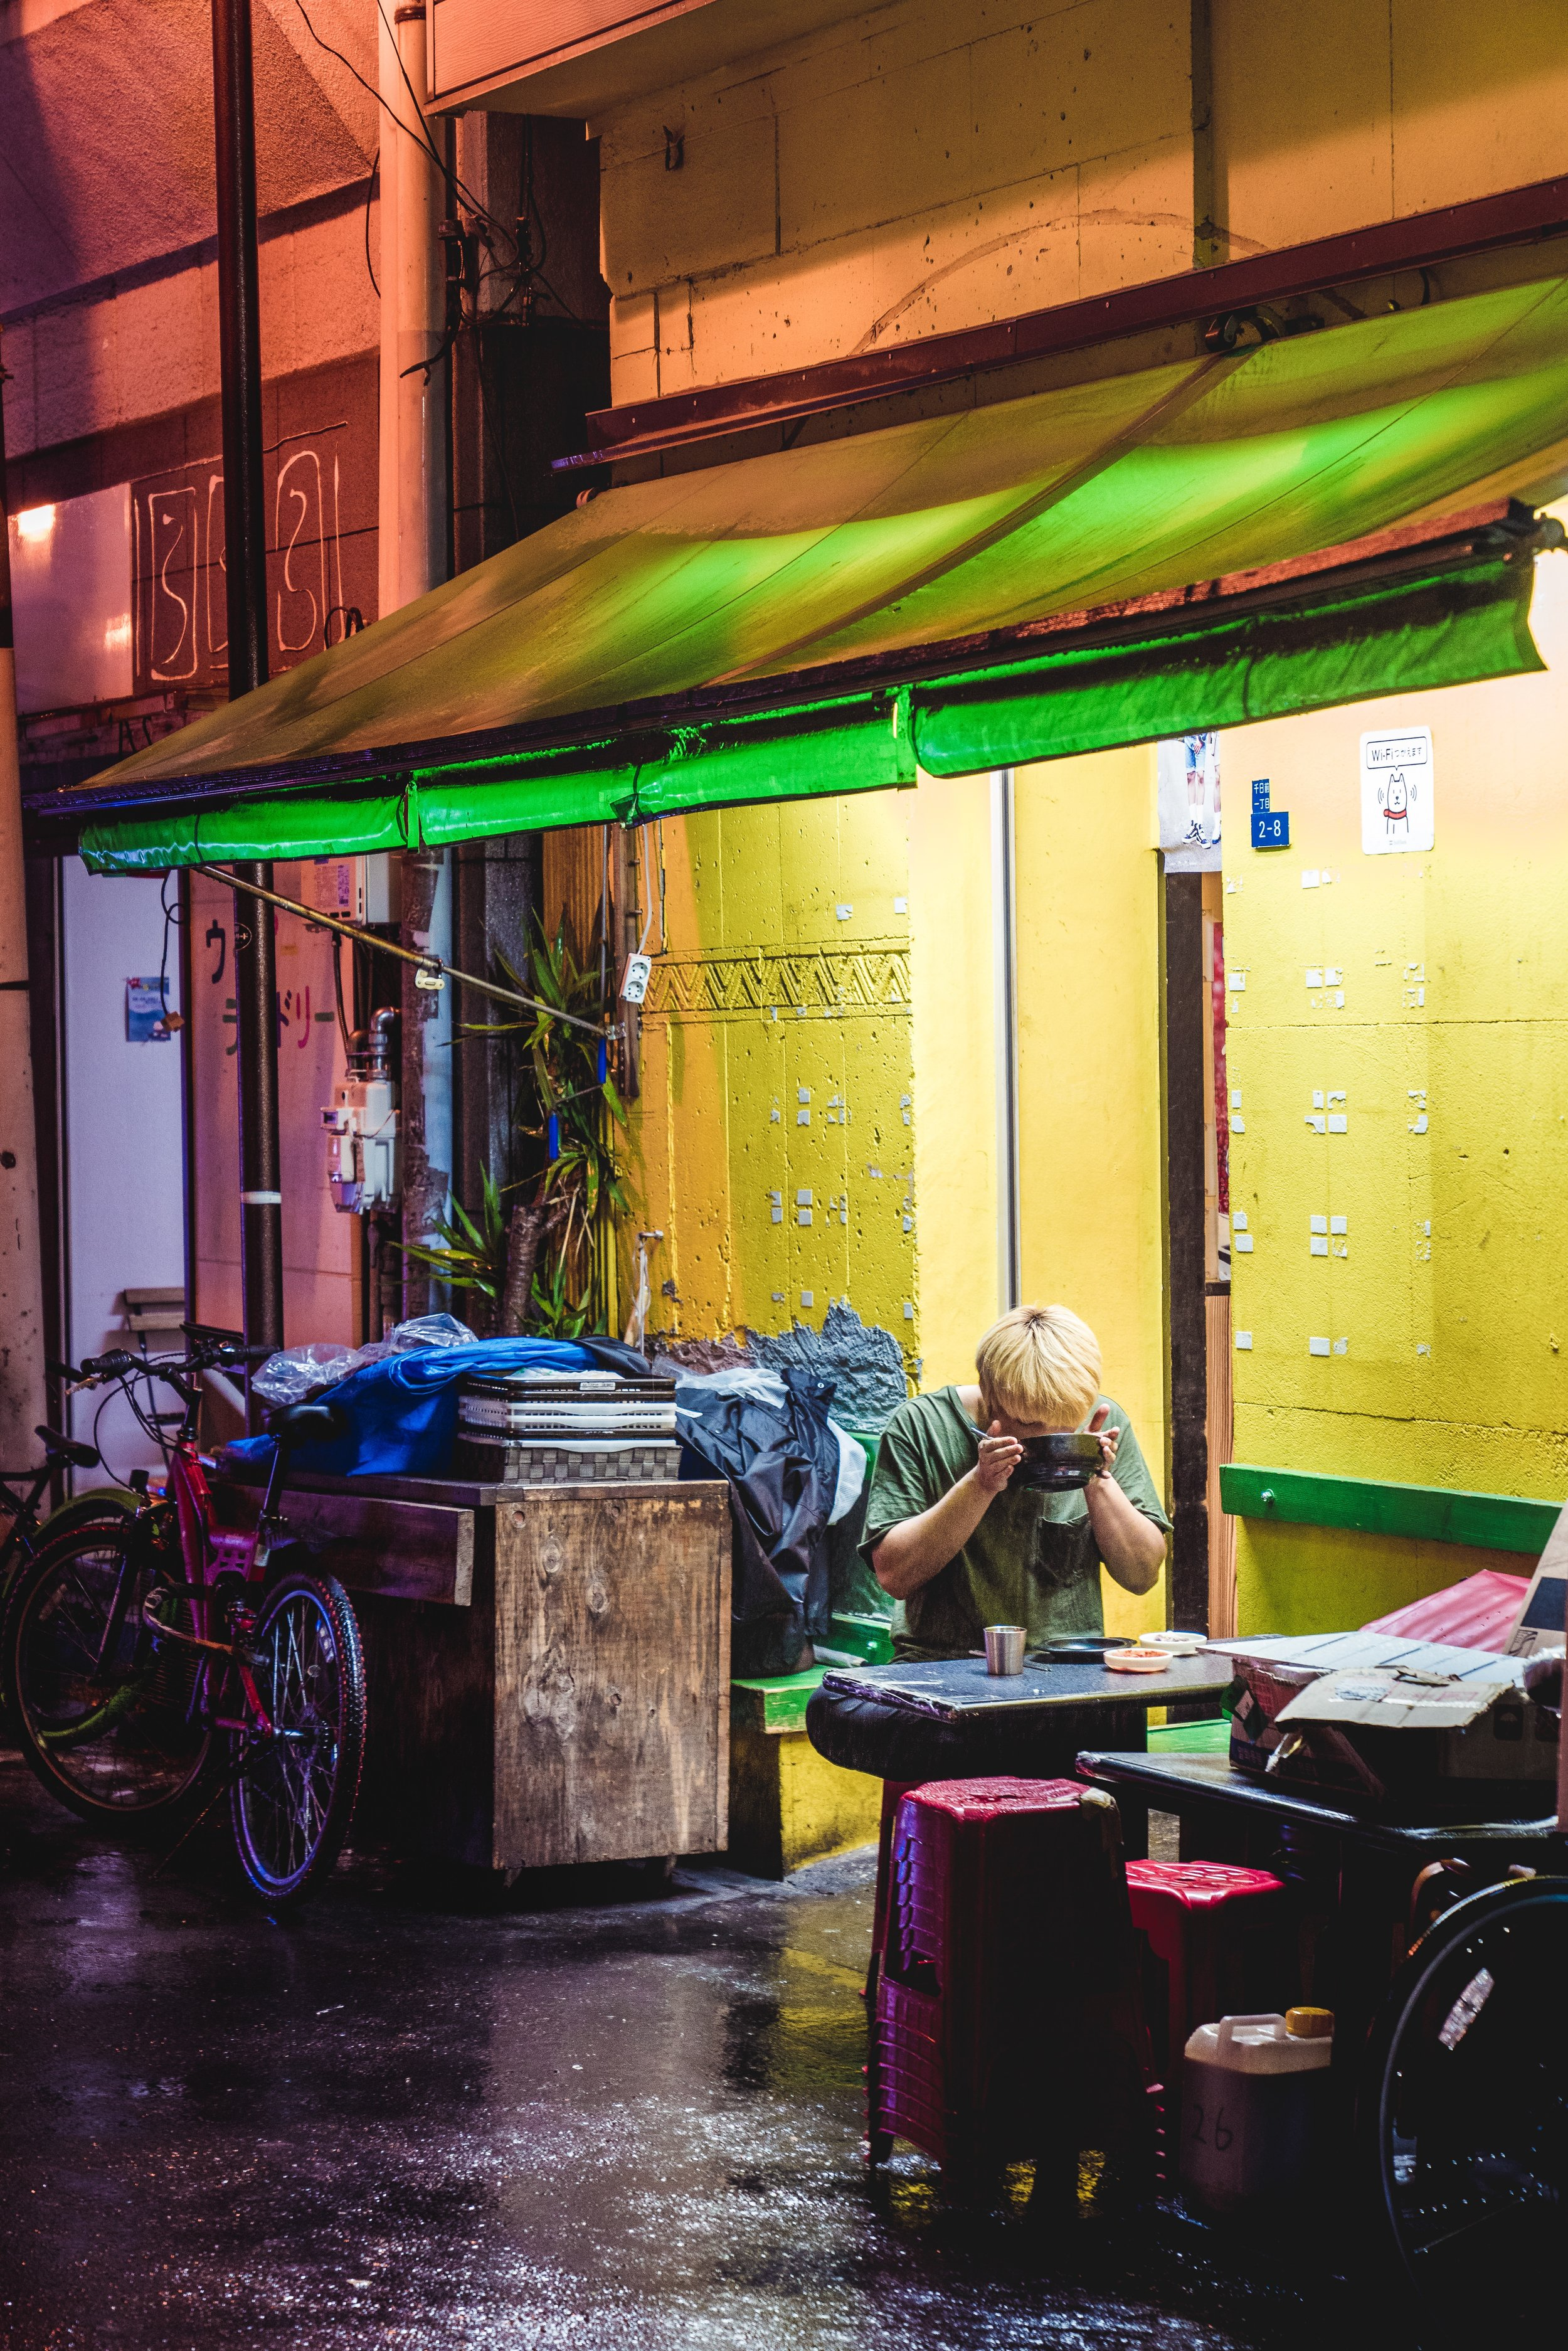 person sitting alone at a street stall eating soup